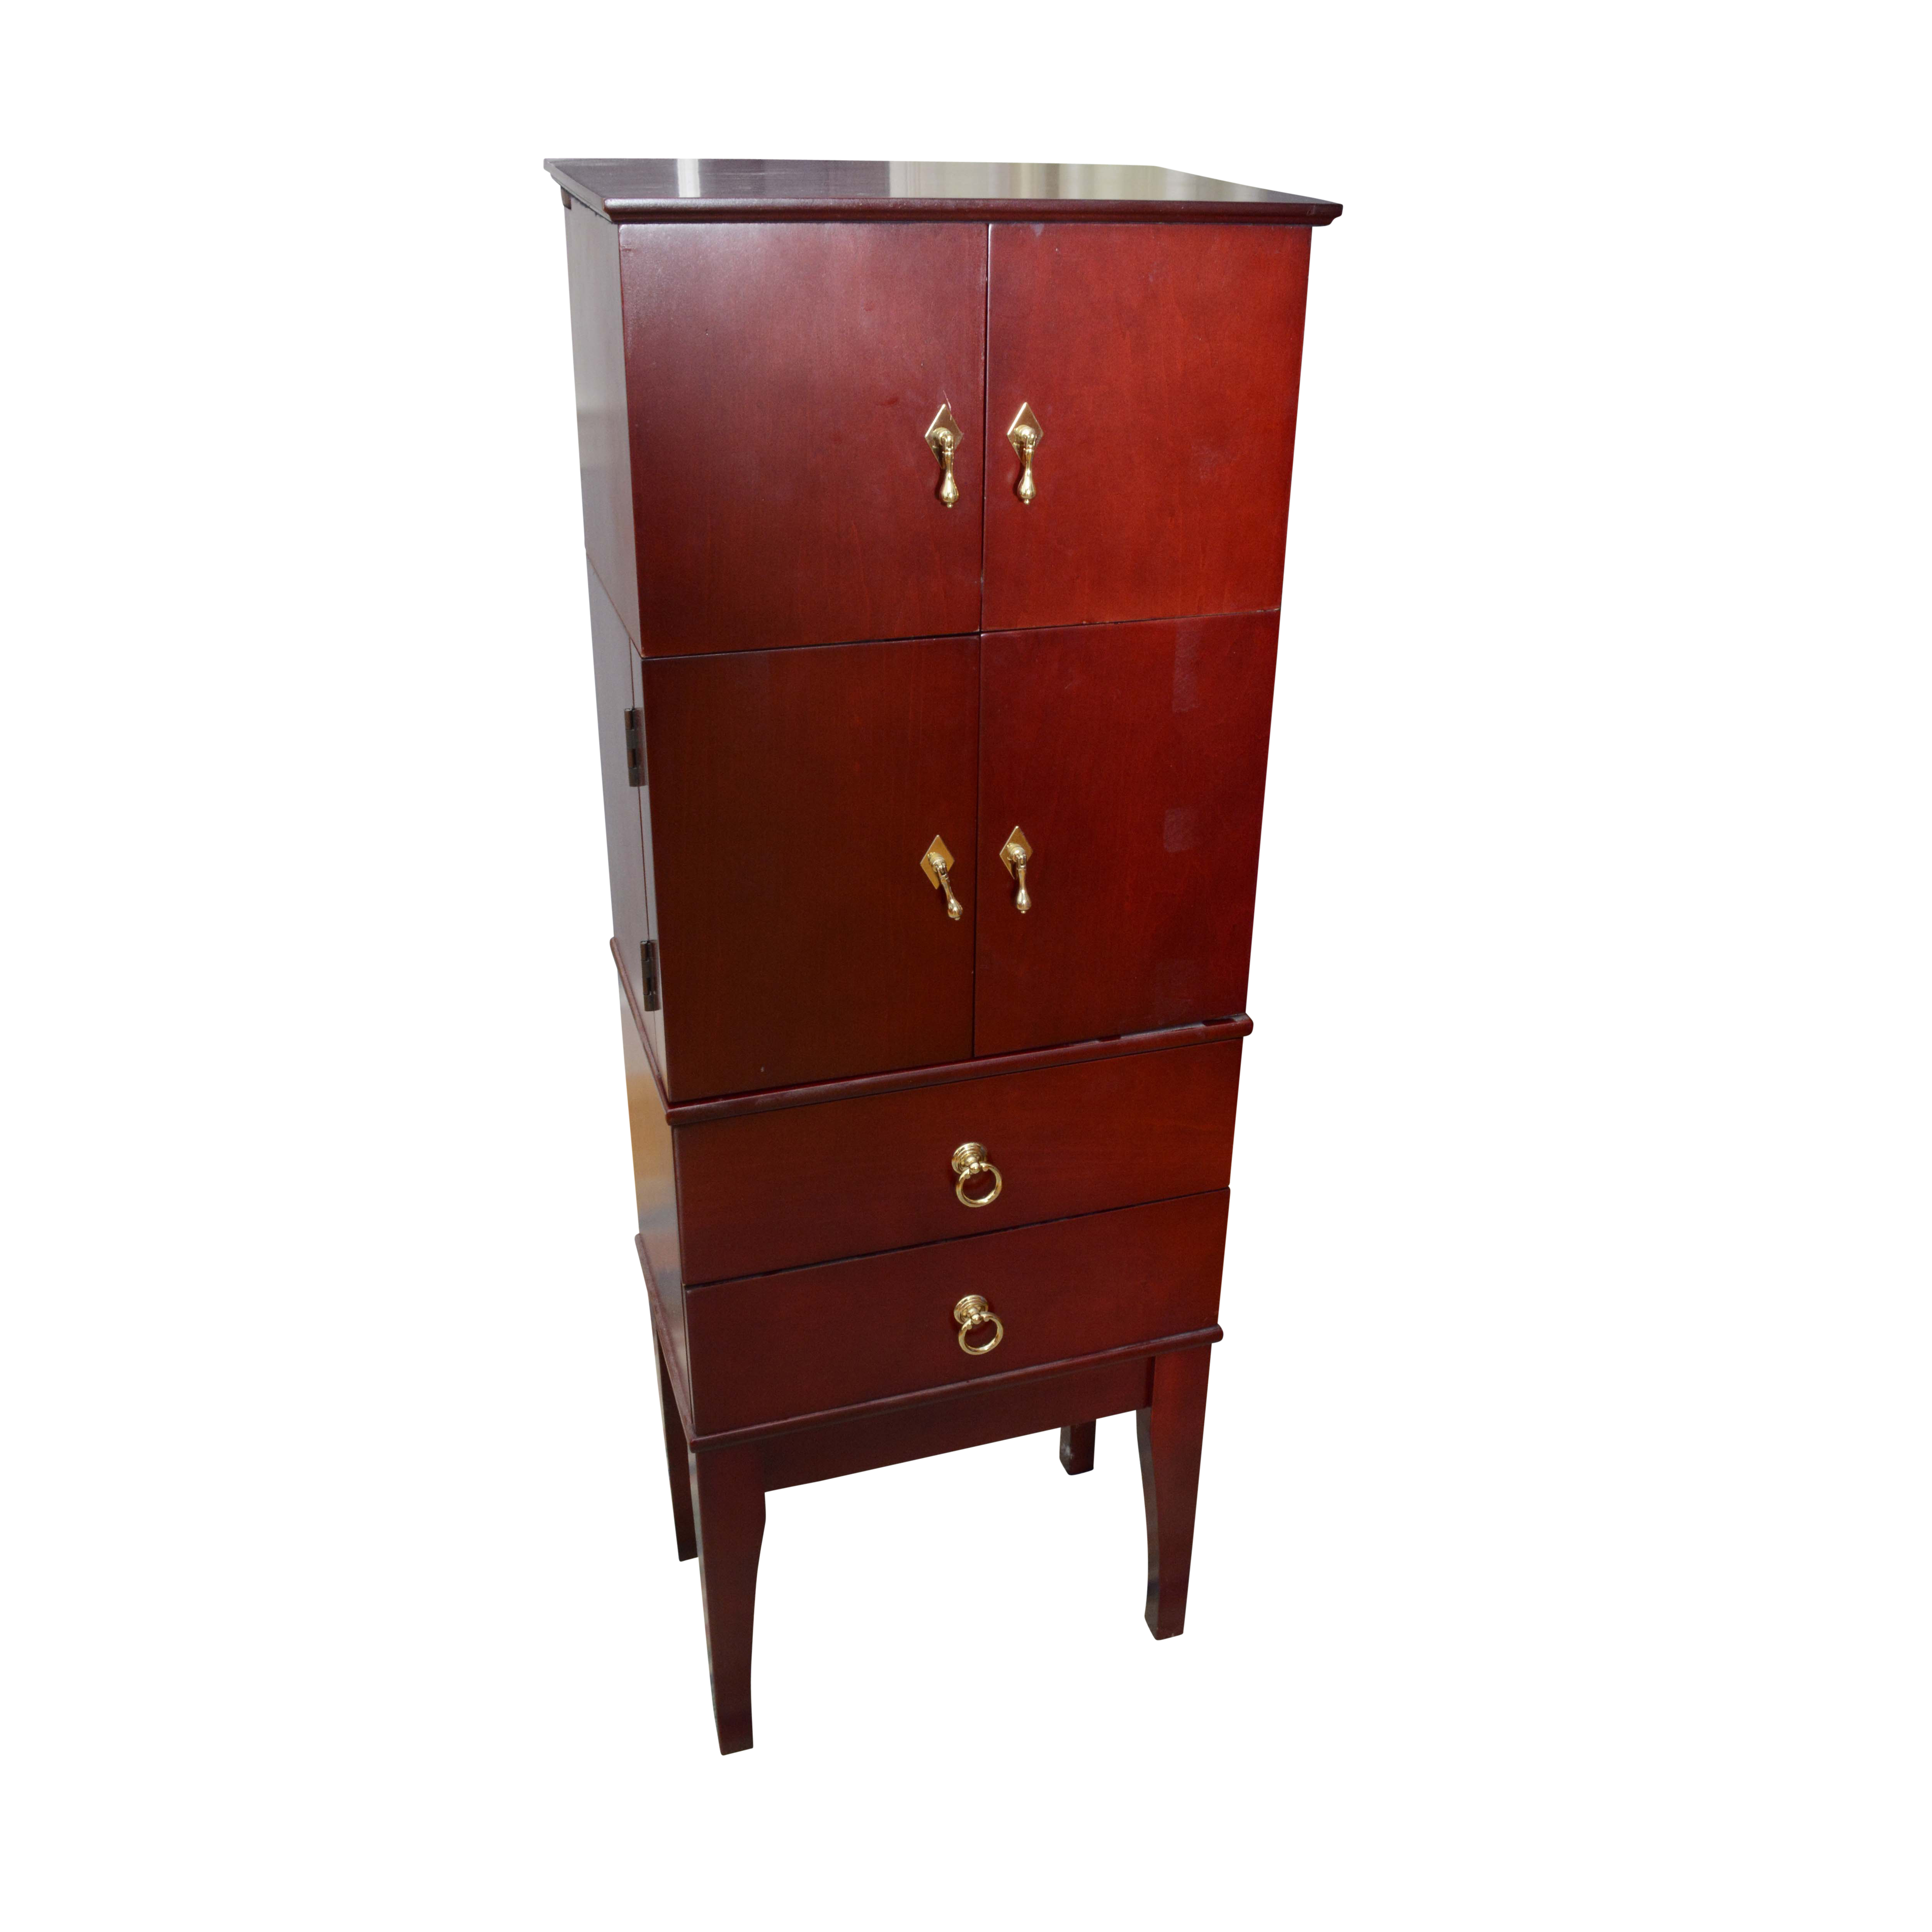 Lori Greiner For Your Ease Only Jewelry Armoire EBTH